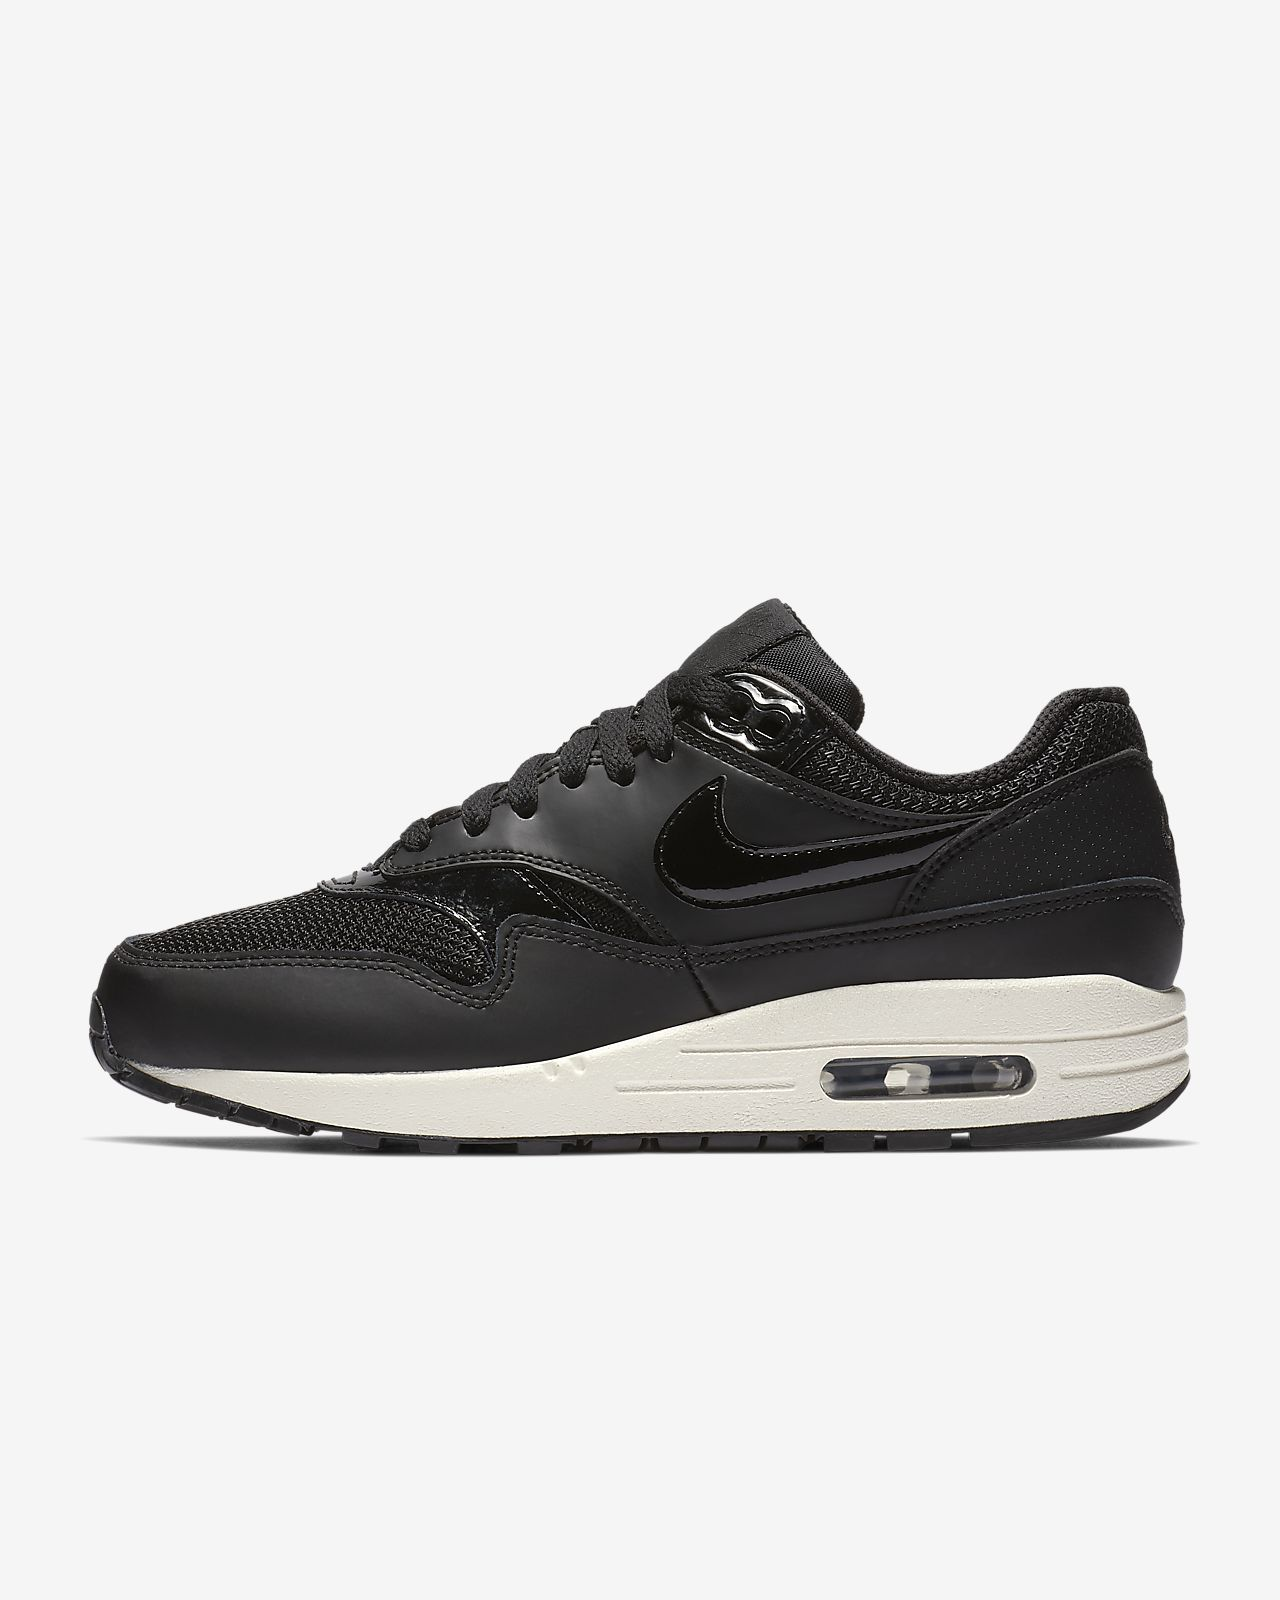 Nike Air Max 1 Damenschuh